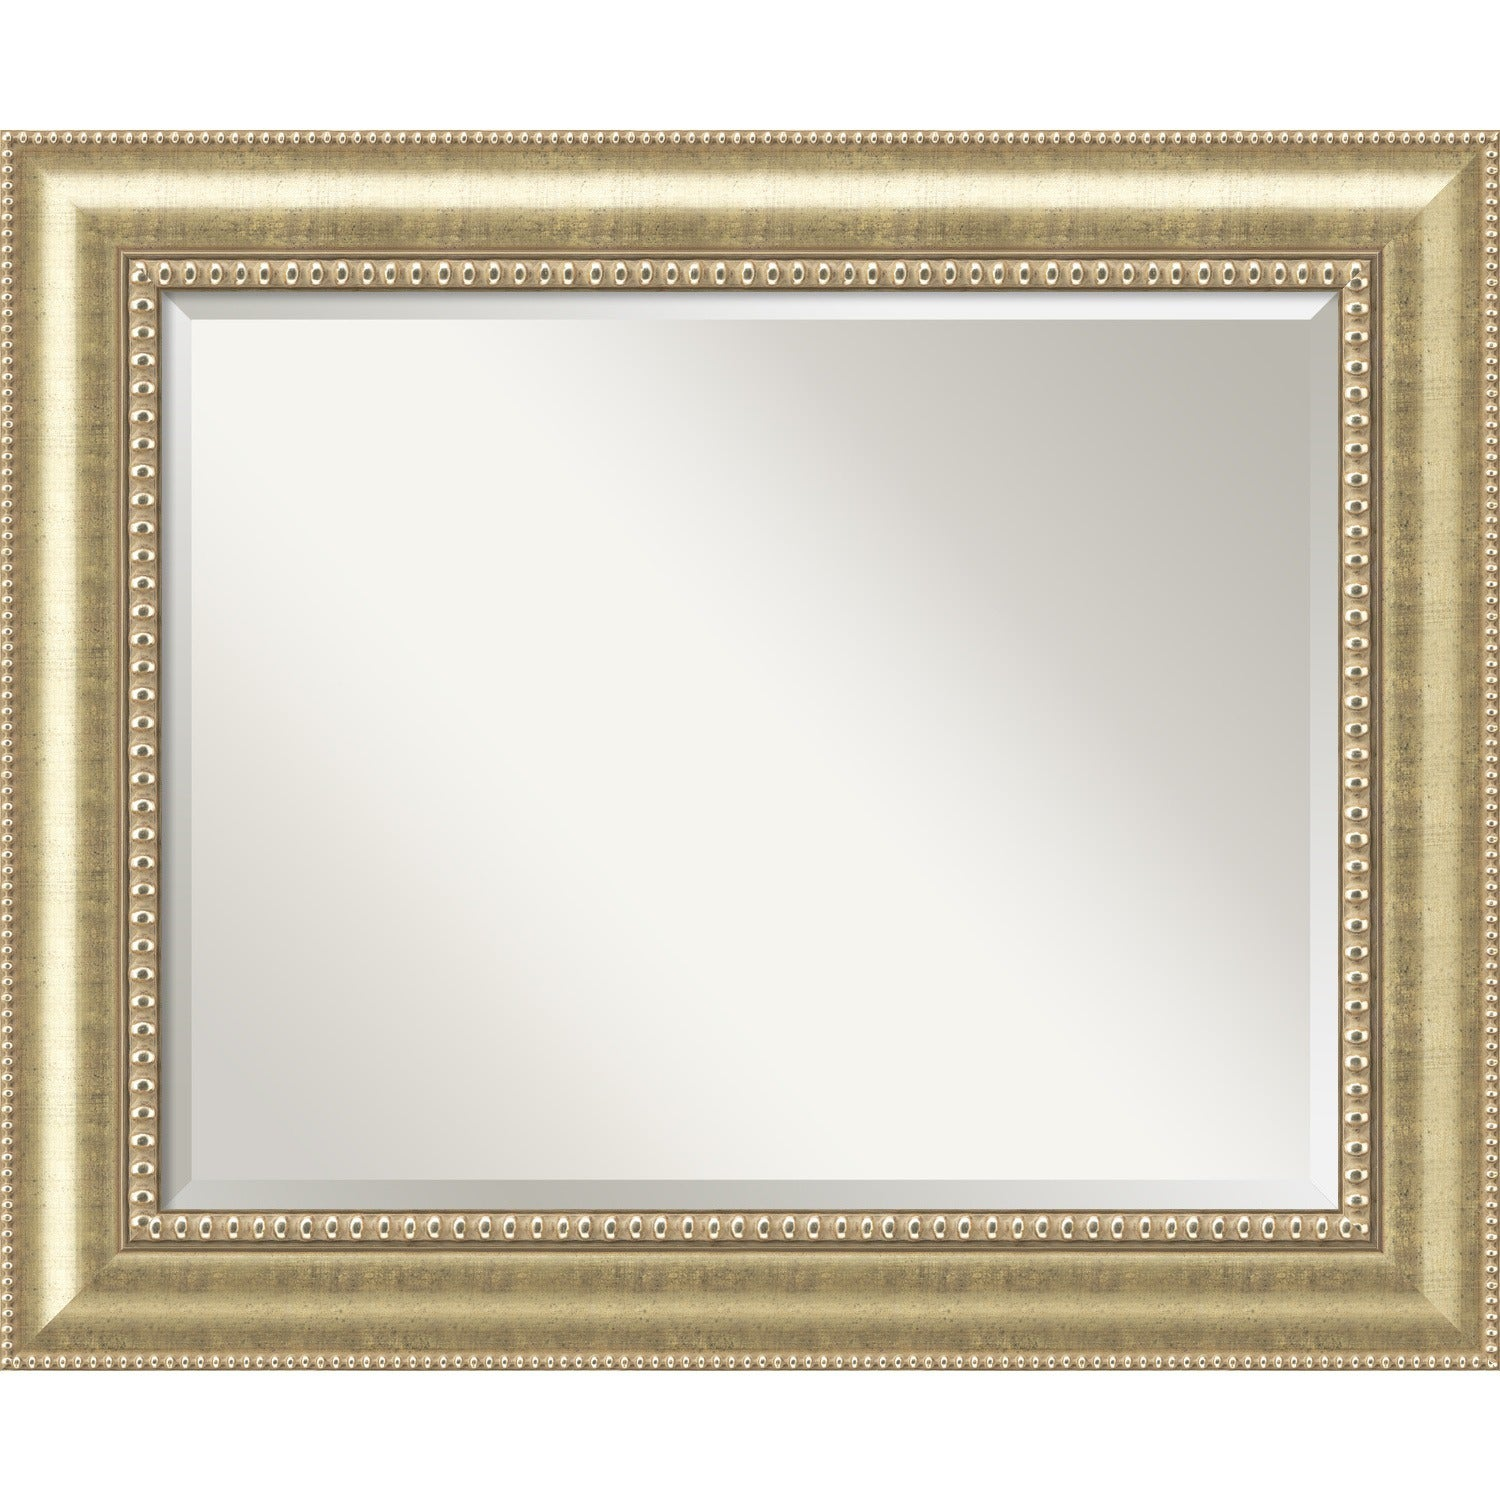 Shop Wall Mirror Large, Astoria Champagne 35 x 29-inch - Gold ...